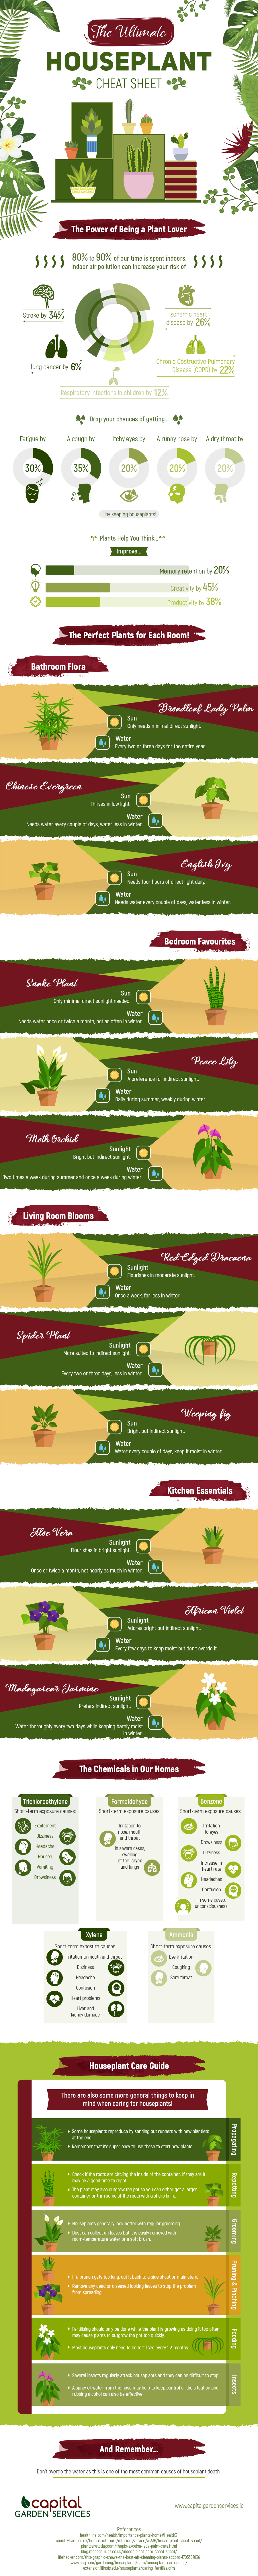 The Ultimate Houseplant Cheat Sheet Infographic